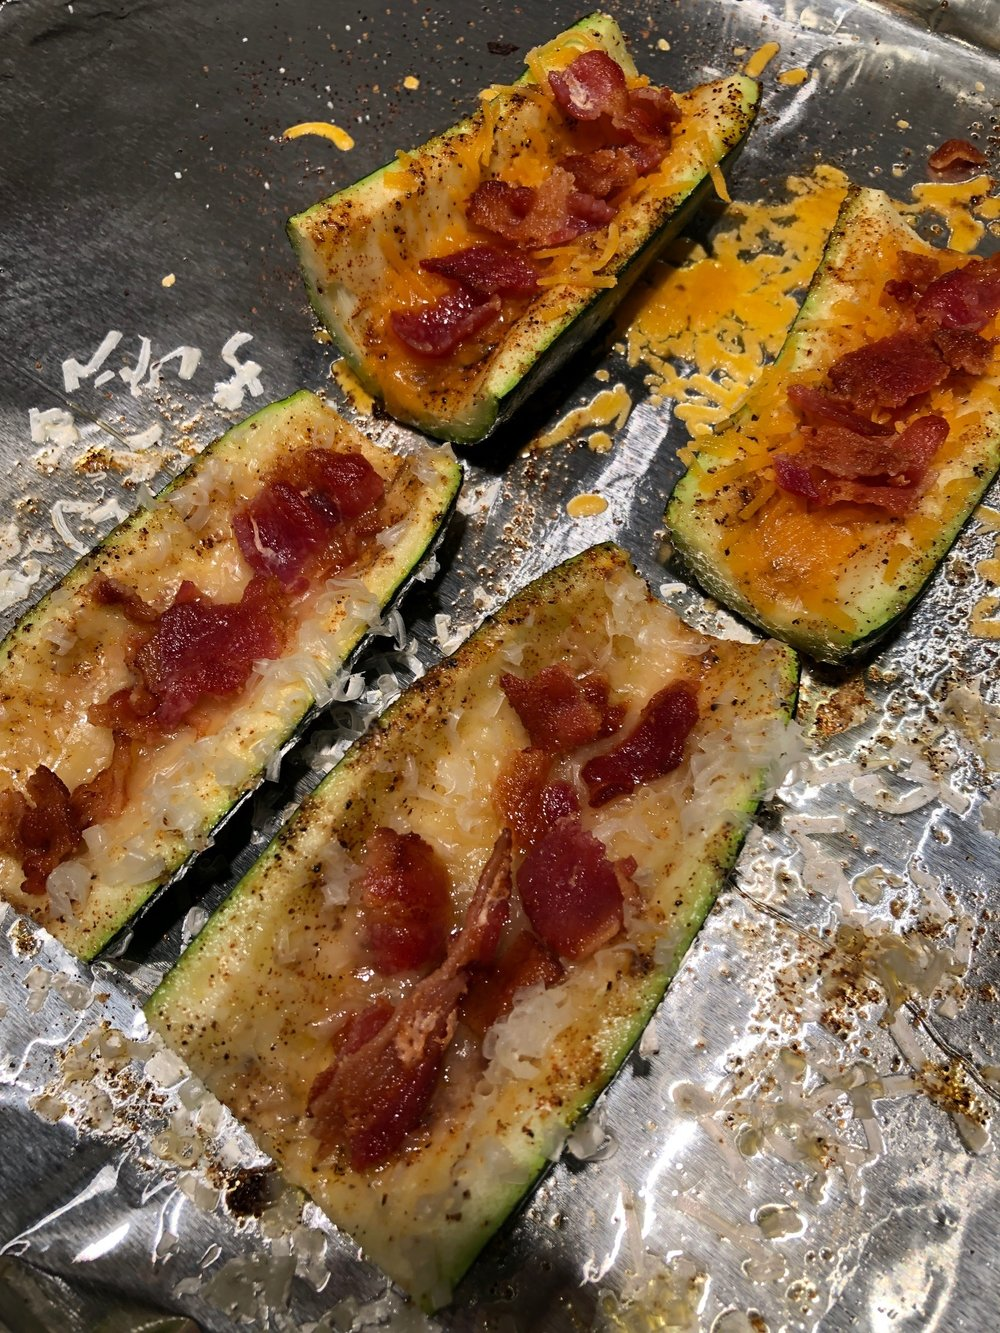 Step 3 - Add cheese and bacon then bake for another 5 minutes